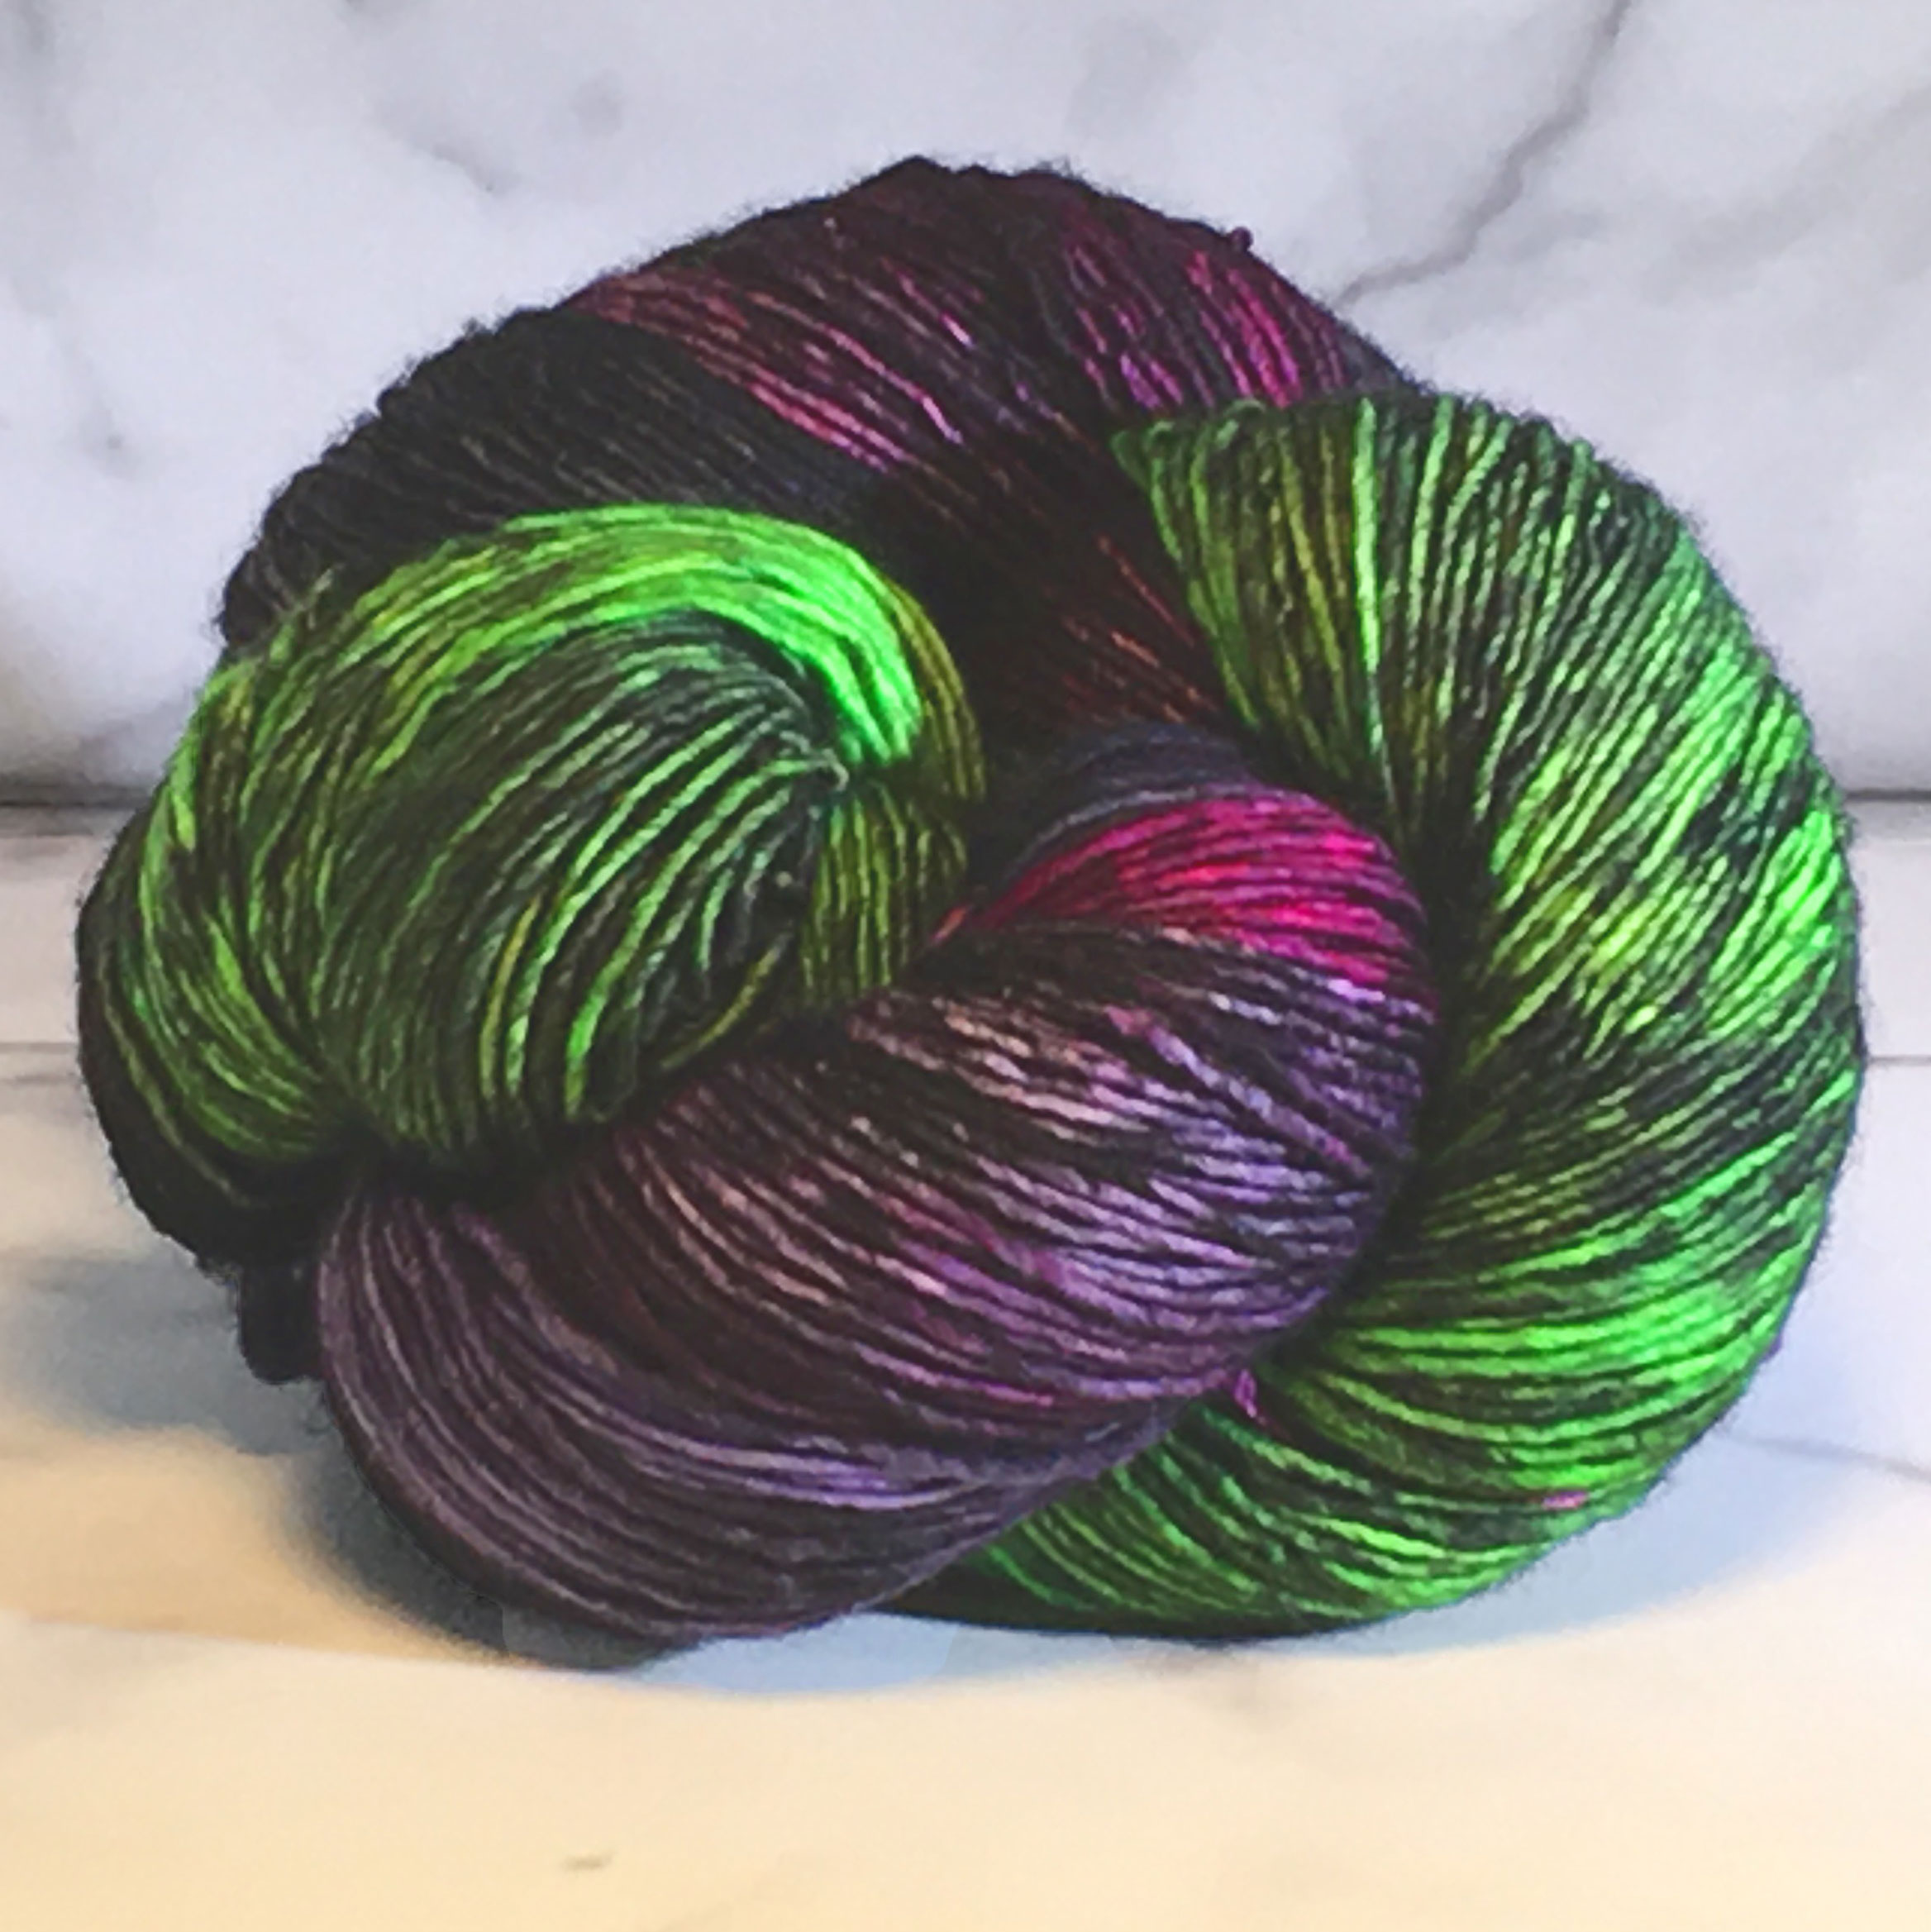 Dragonfly Pixie<br><strong>Aurora Borealis</strong><br>.